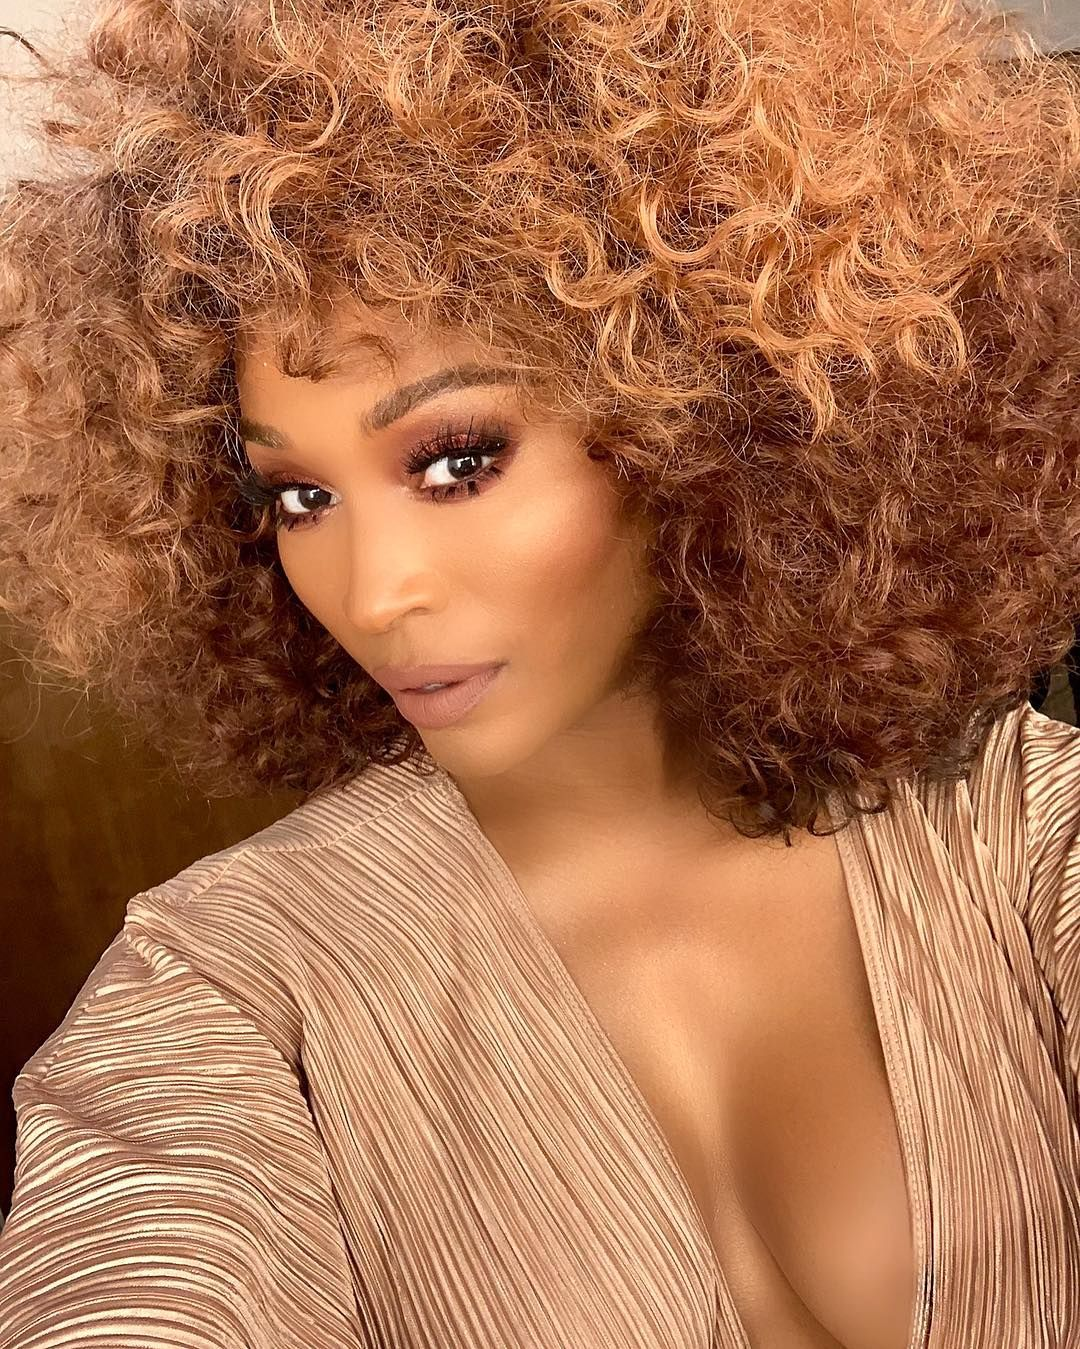 21k Likes, 373 Comments Cynthia Bailey (cynthiabailey10